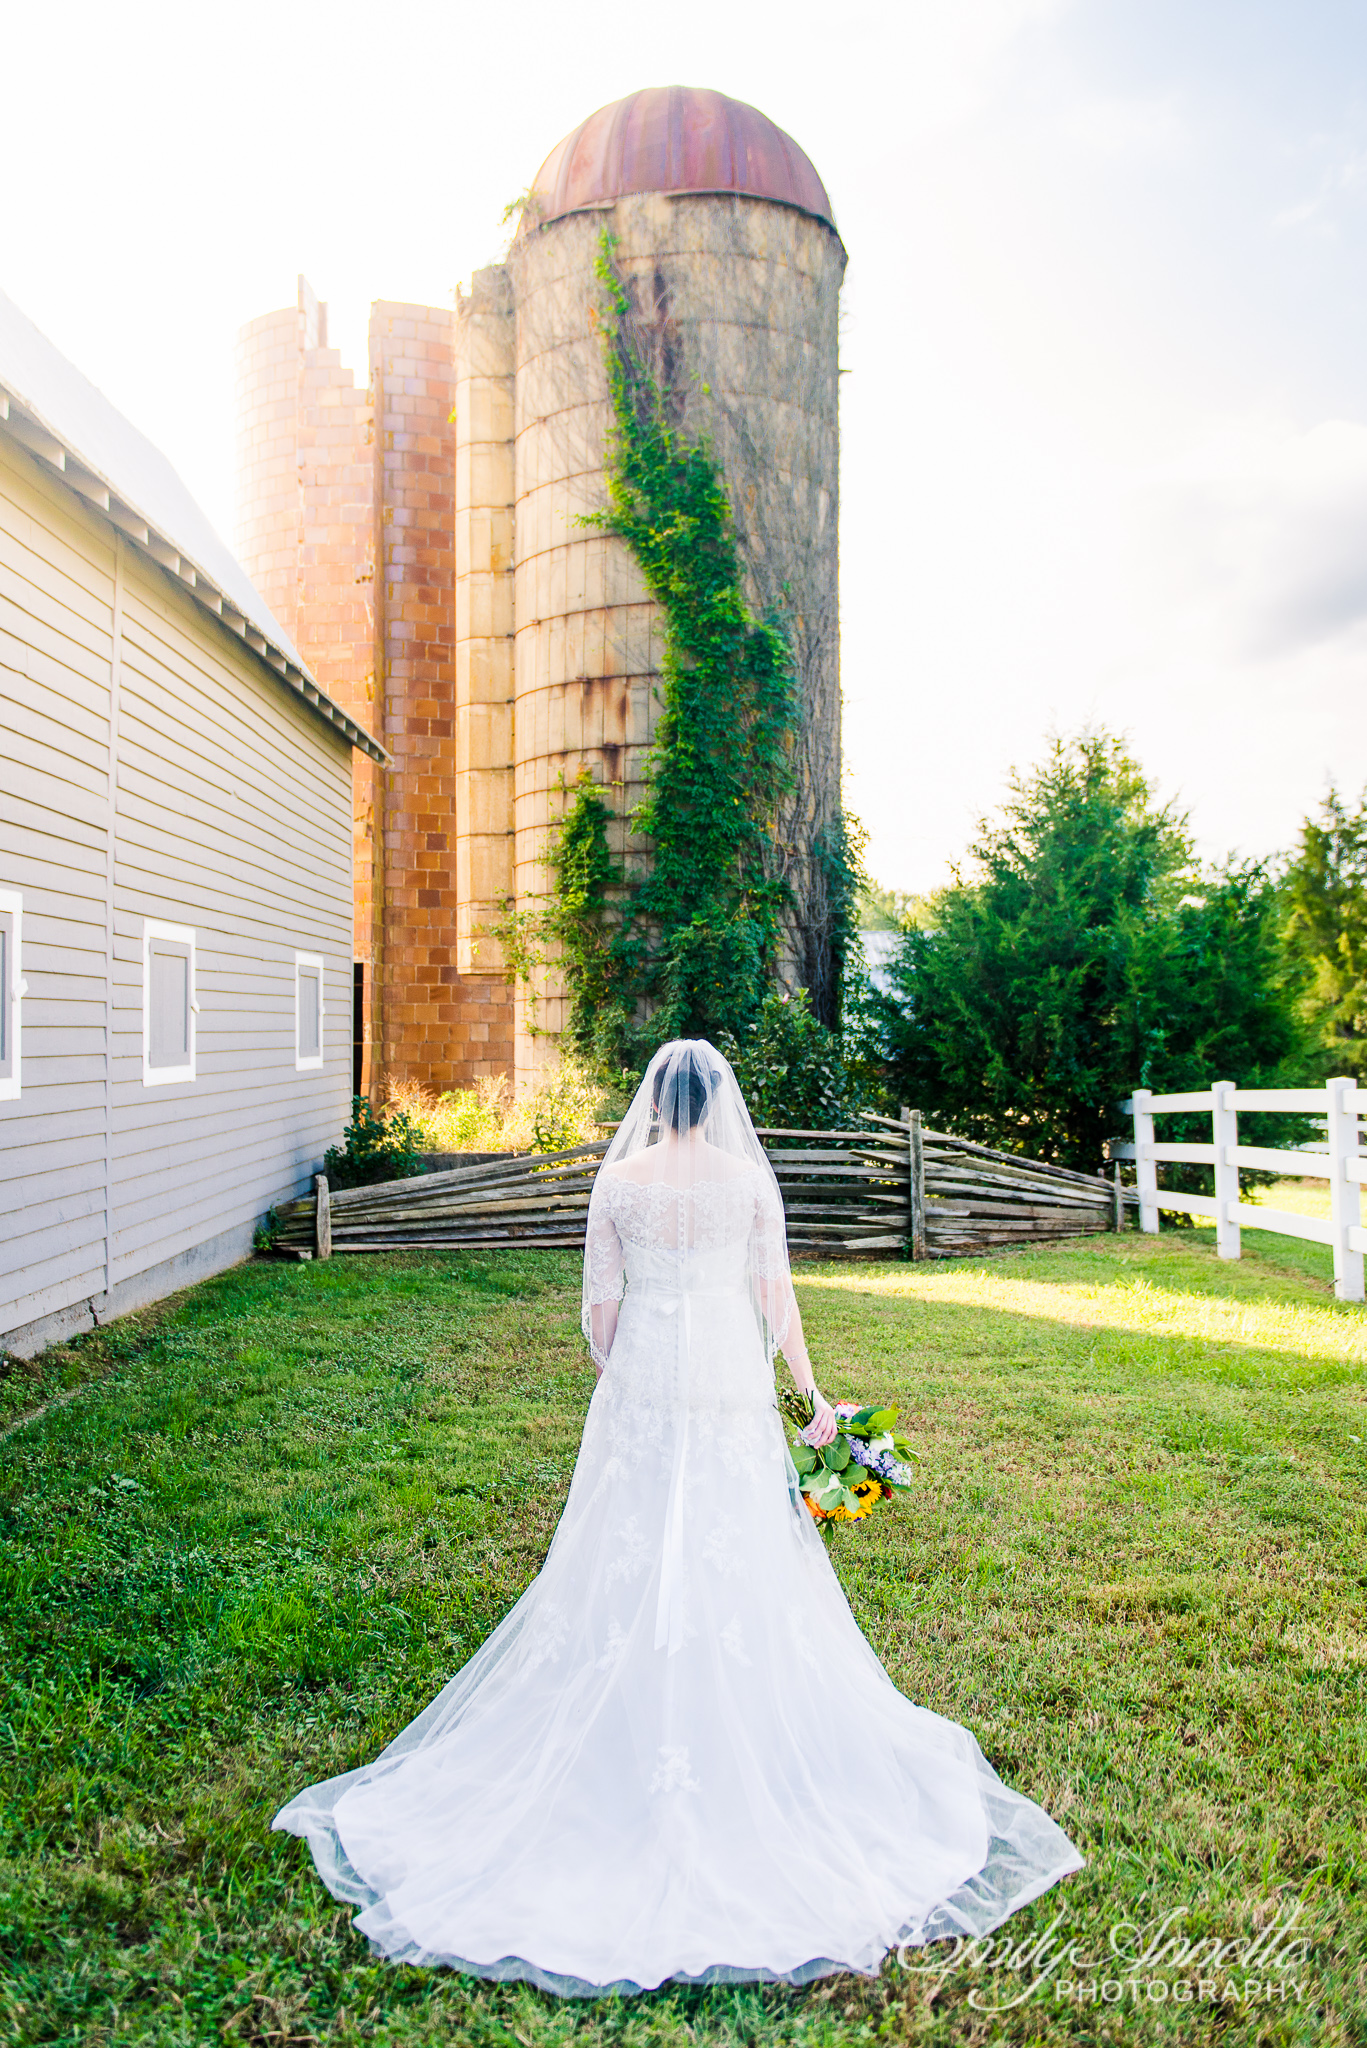 A bride poses for a portrait showing the back of her dress with a chapel train holding a colorful bouquet outside a silo during a country wedding at Amber Grove near Richmond, Virginia